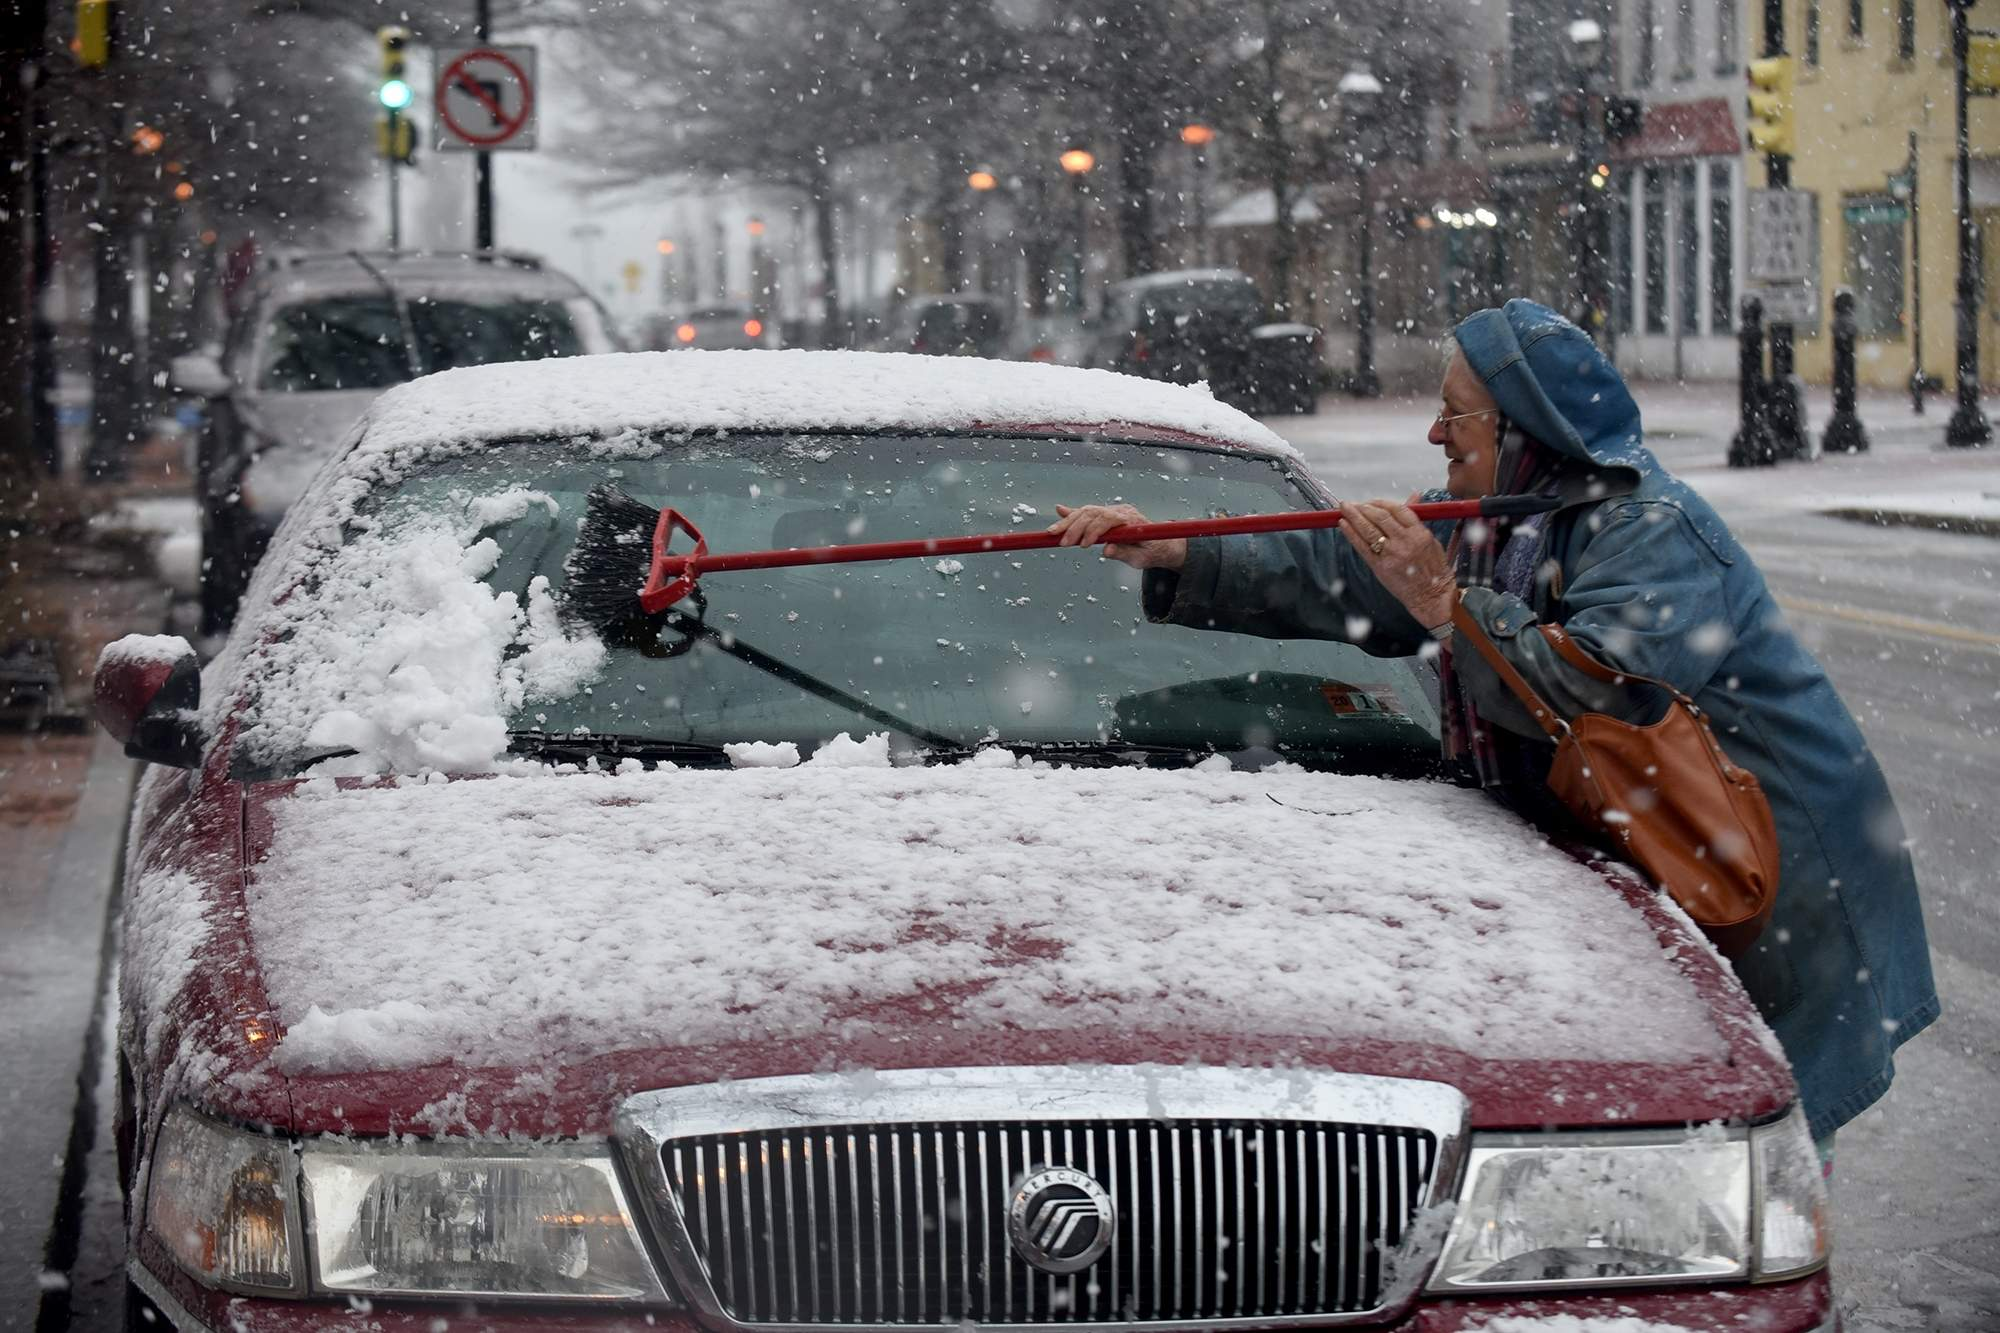 Pat Measey of Burlington City cleans snow off her car on High Street in Burlington City on Wednesday, March 7, 2018. [CARL KOSOLA / STAFF PHOTOJOURNALIST]